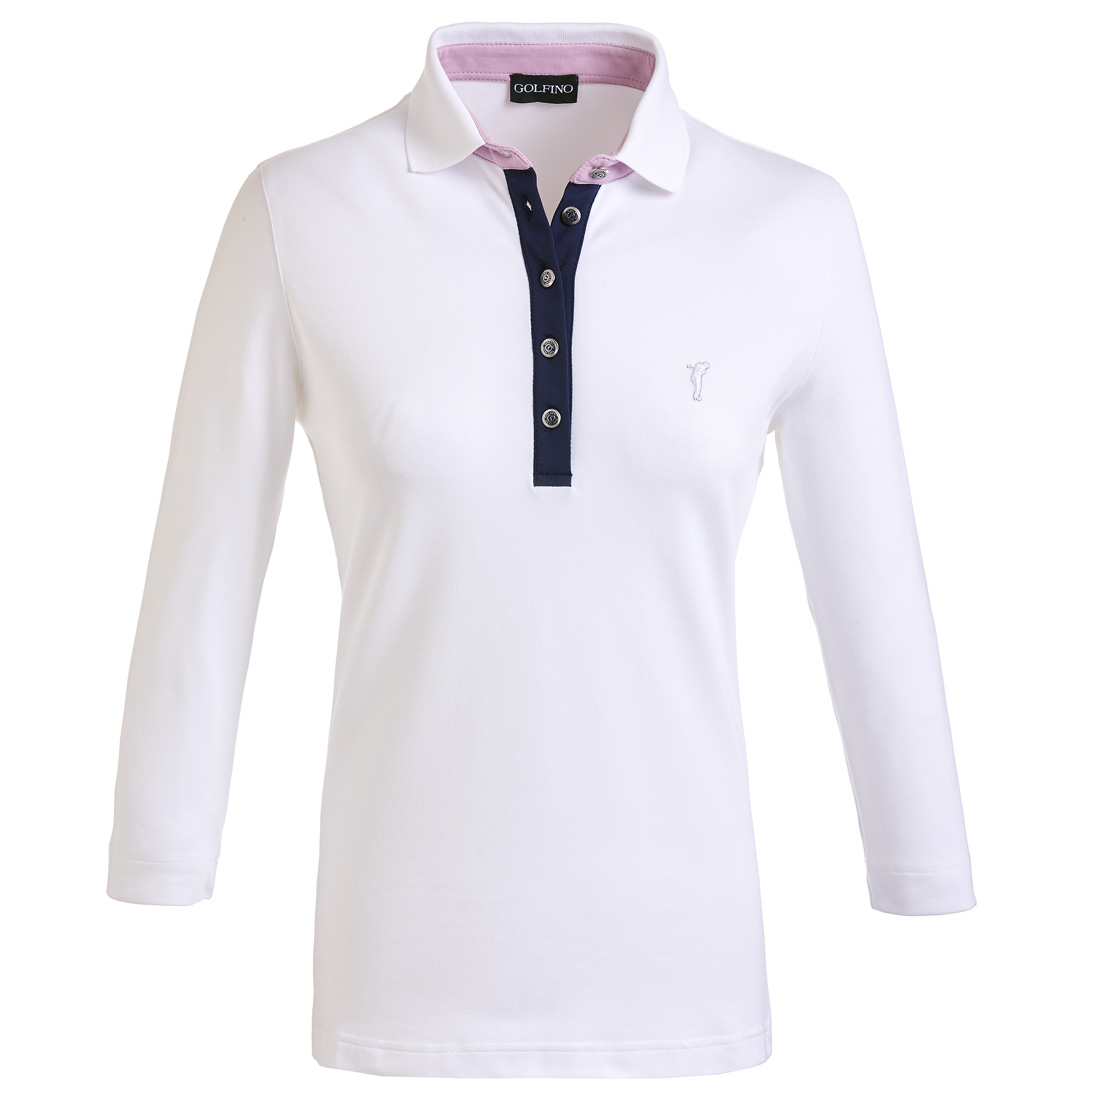 3/4-Arm Damen Poloshirt mit Sun Protection